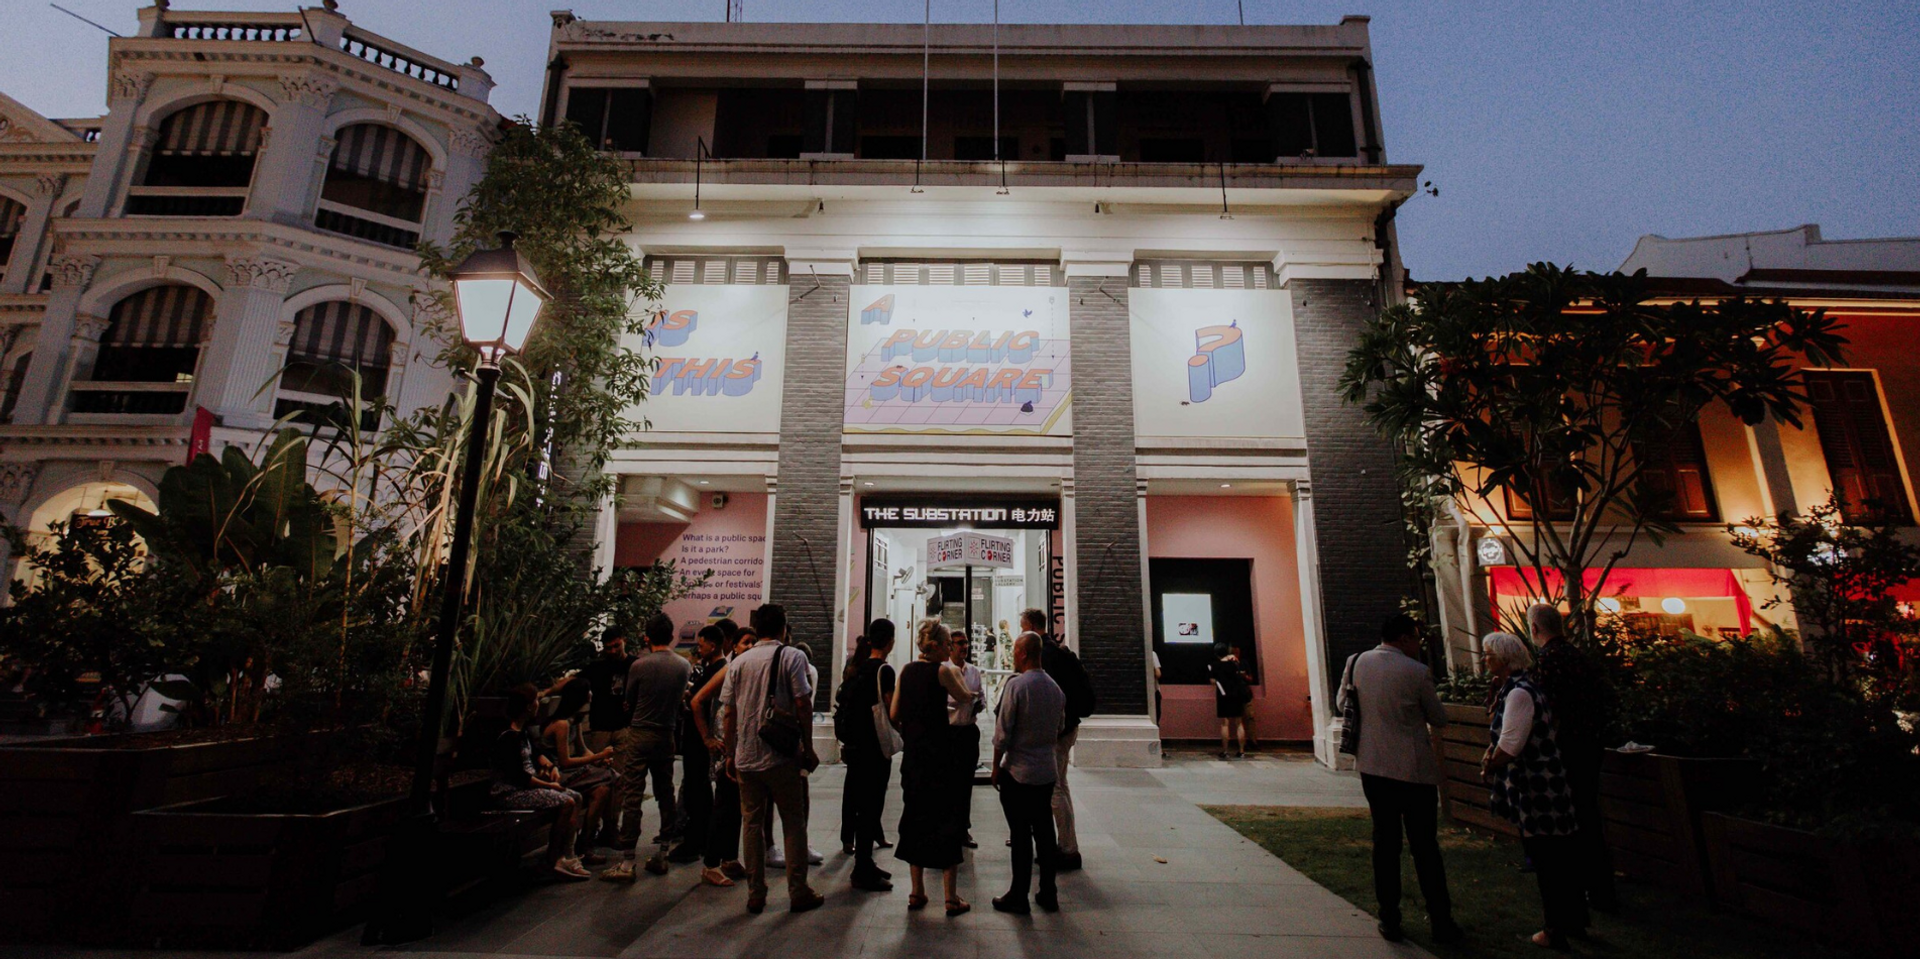 Singapore's The Substation to remain open, converts to arts company